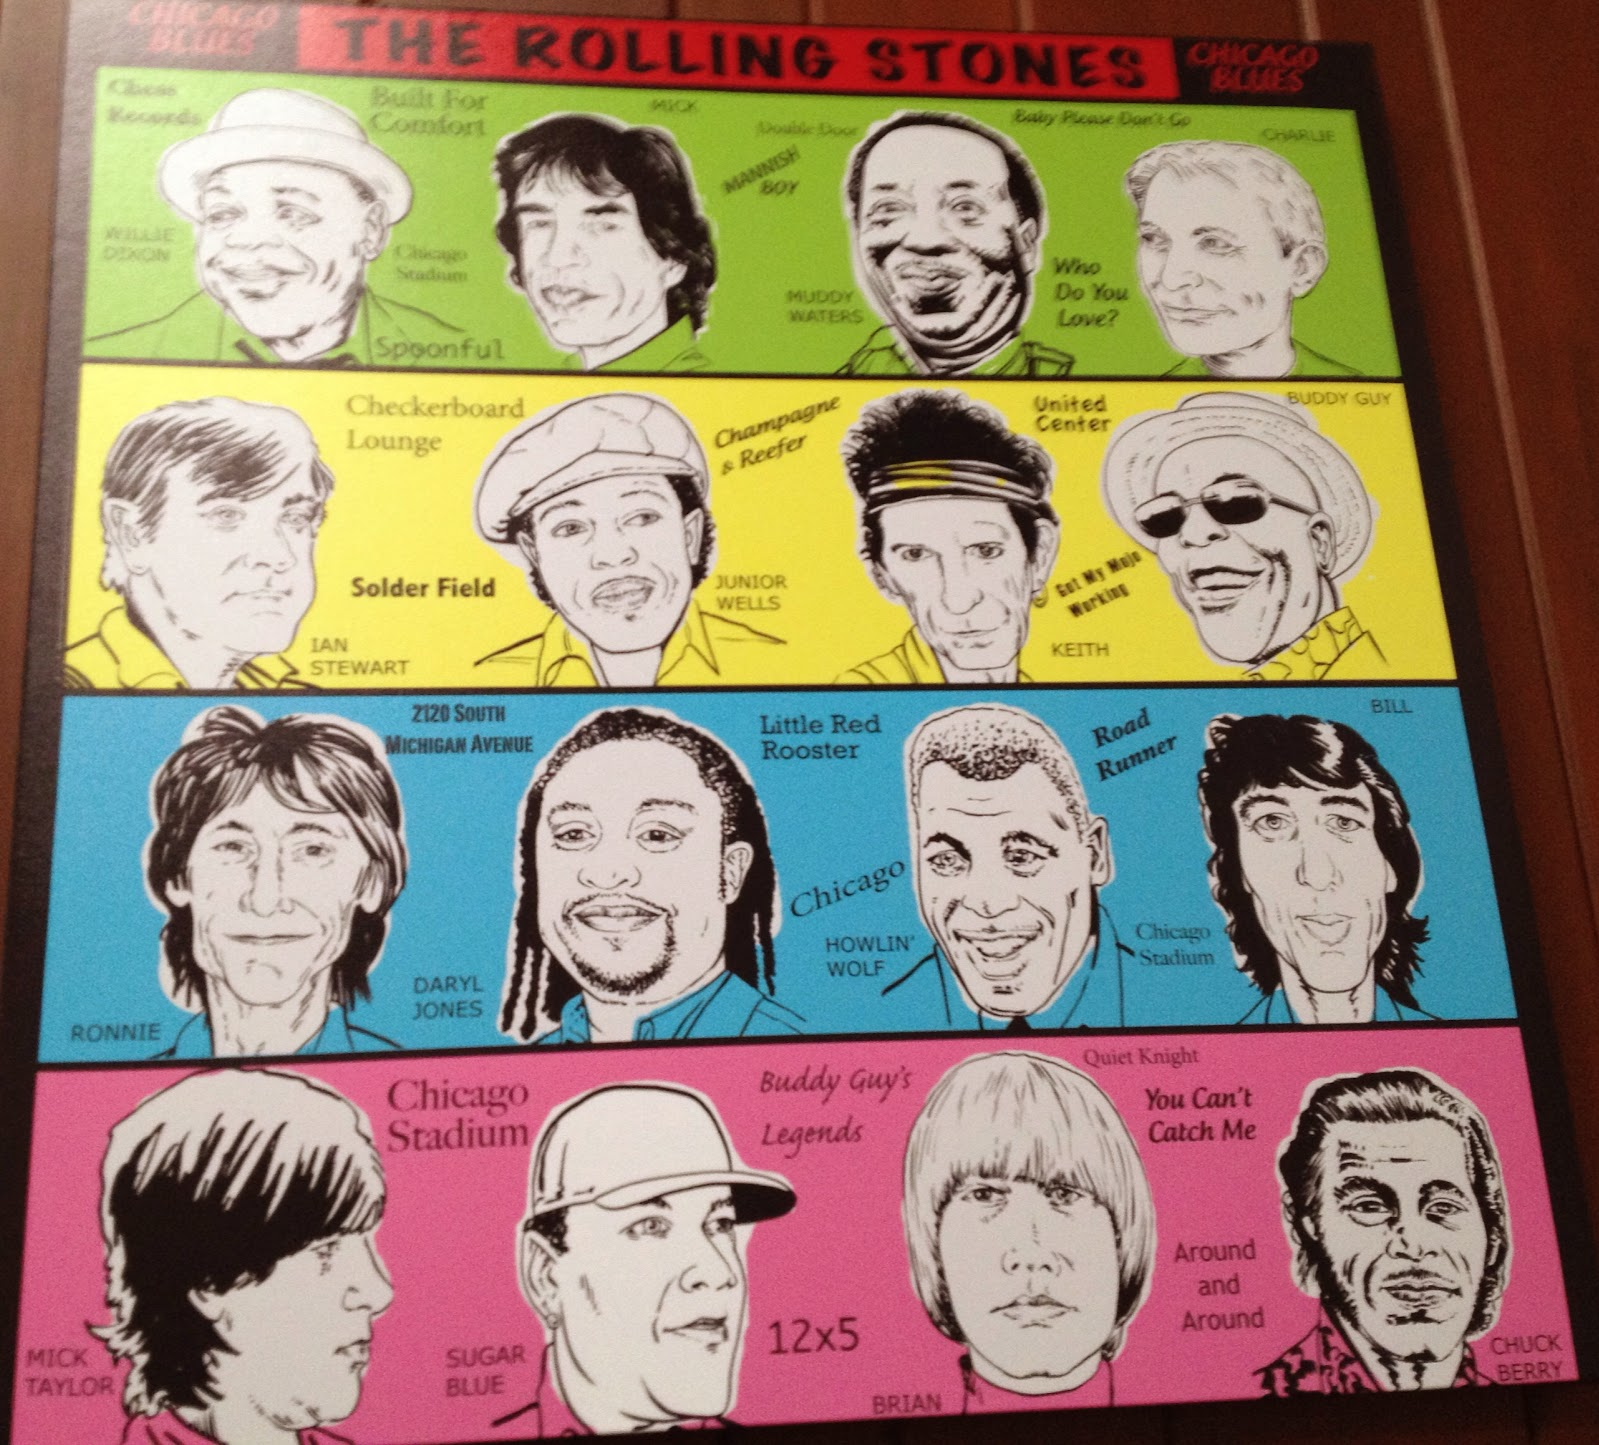 The Rolling Stones Muddy Waters at Chess Records 2120 S Michigan Avenue